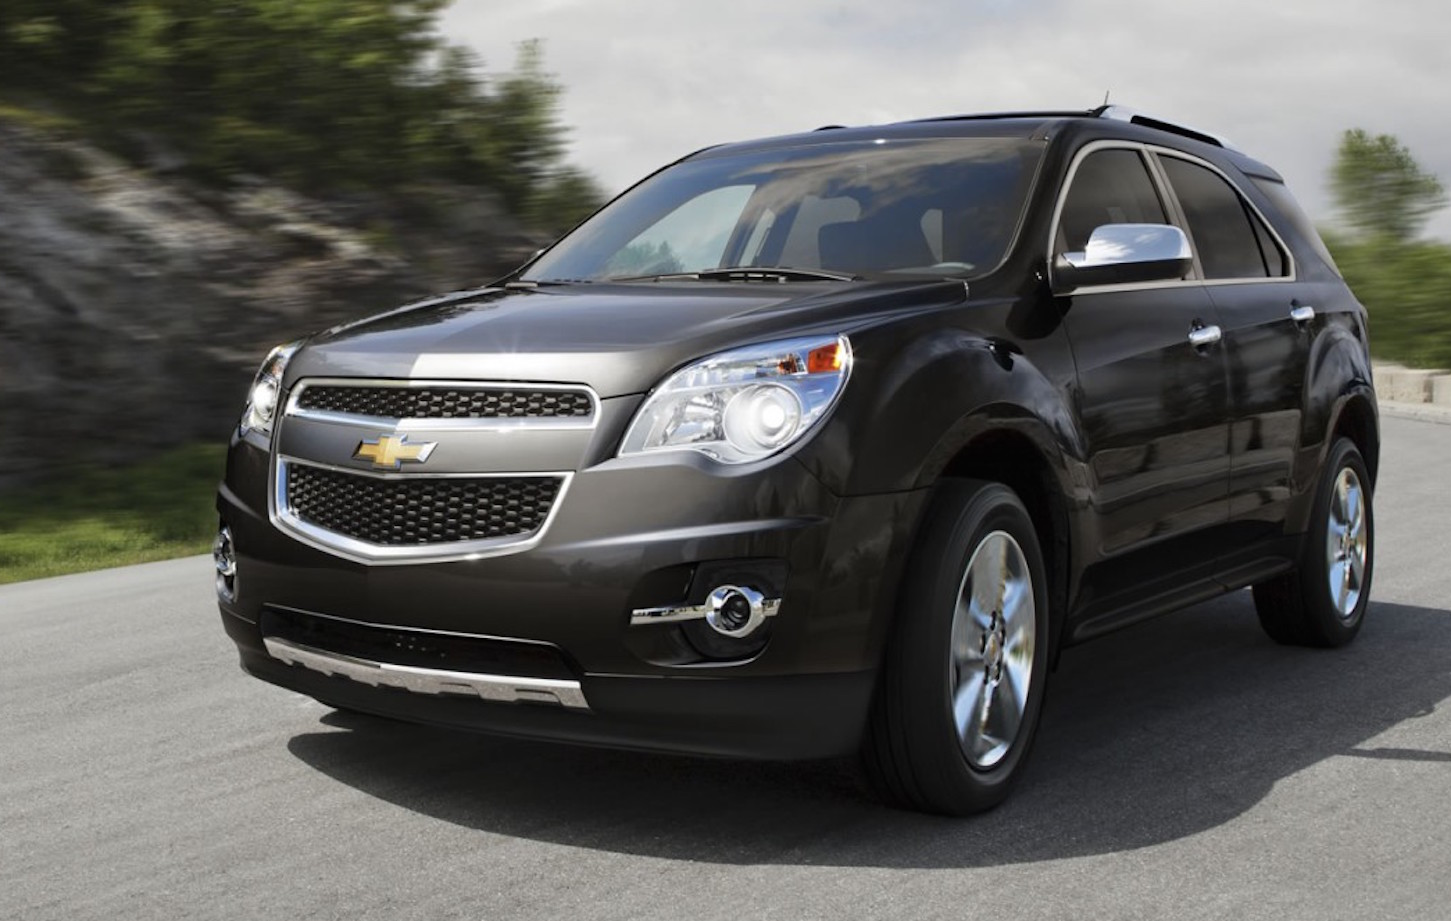 All Chevy chevy cars 2015 : Chevrolet Tops List of Best Family Cars